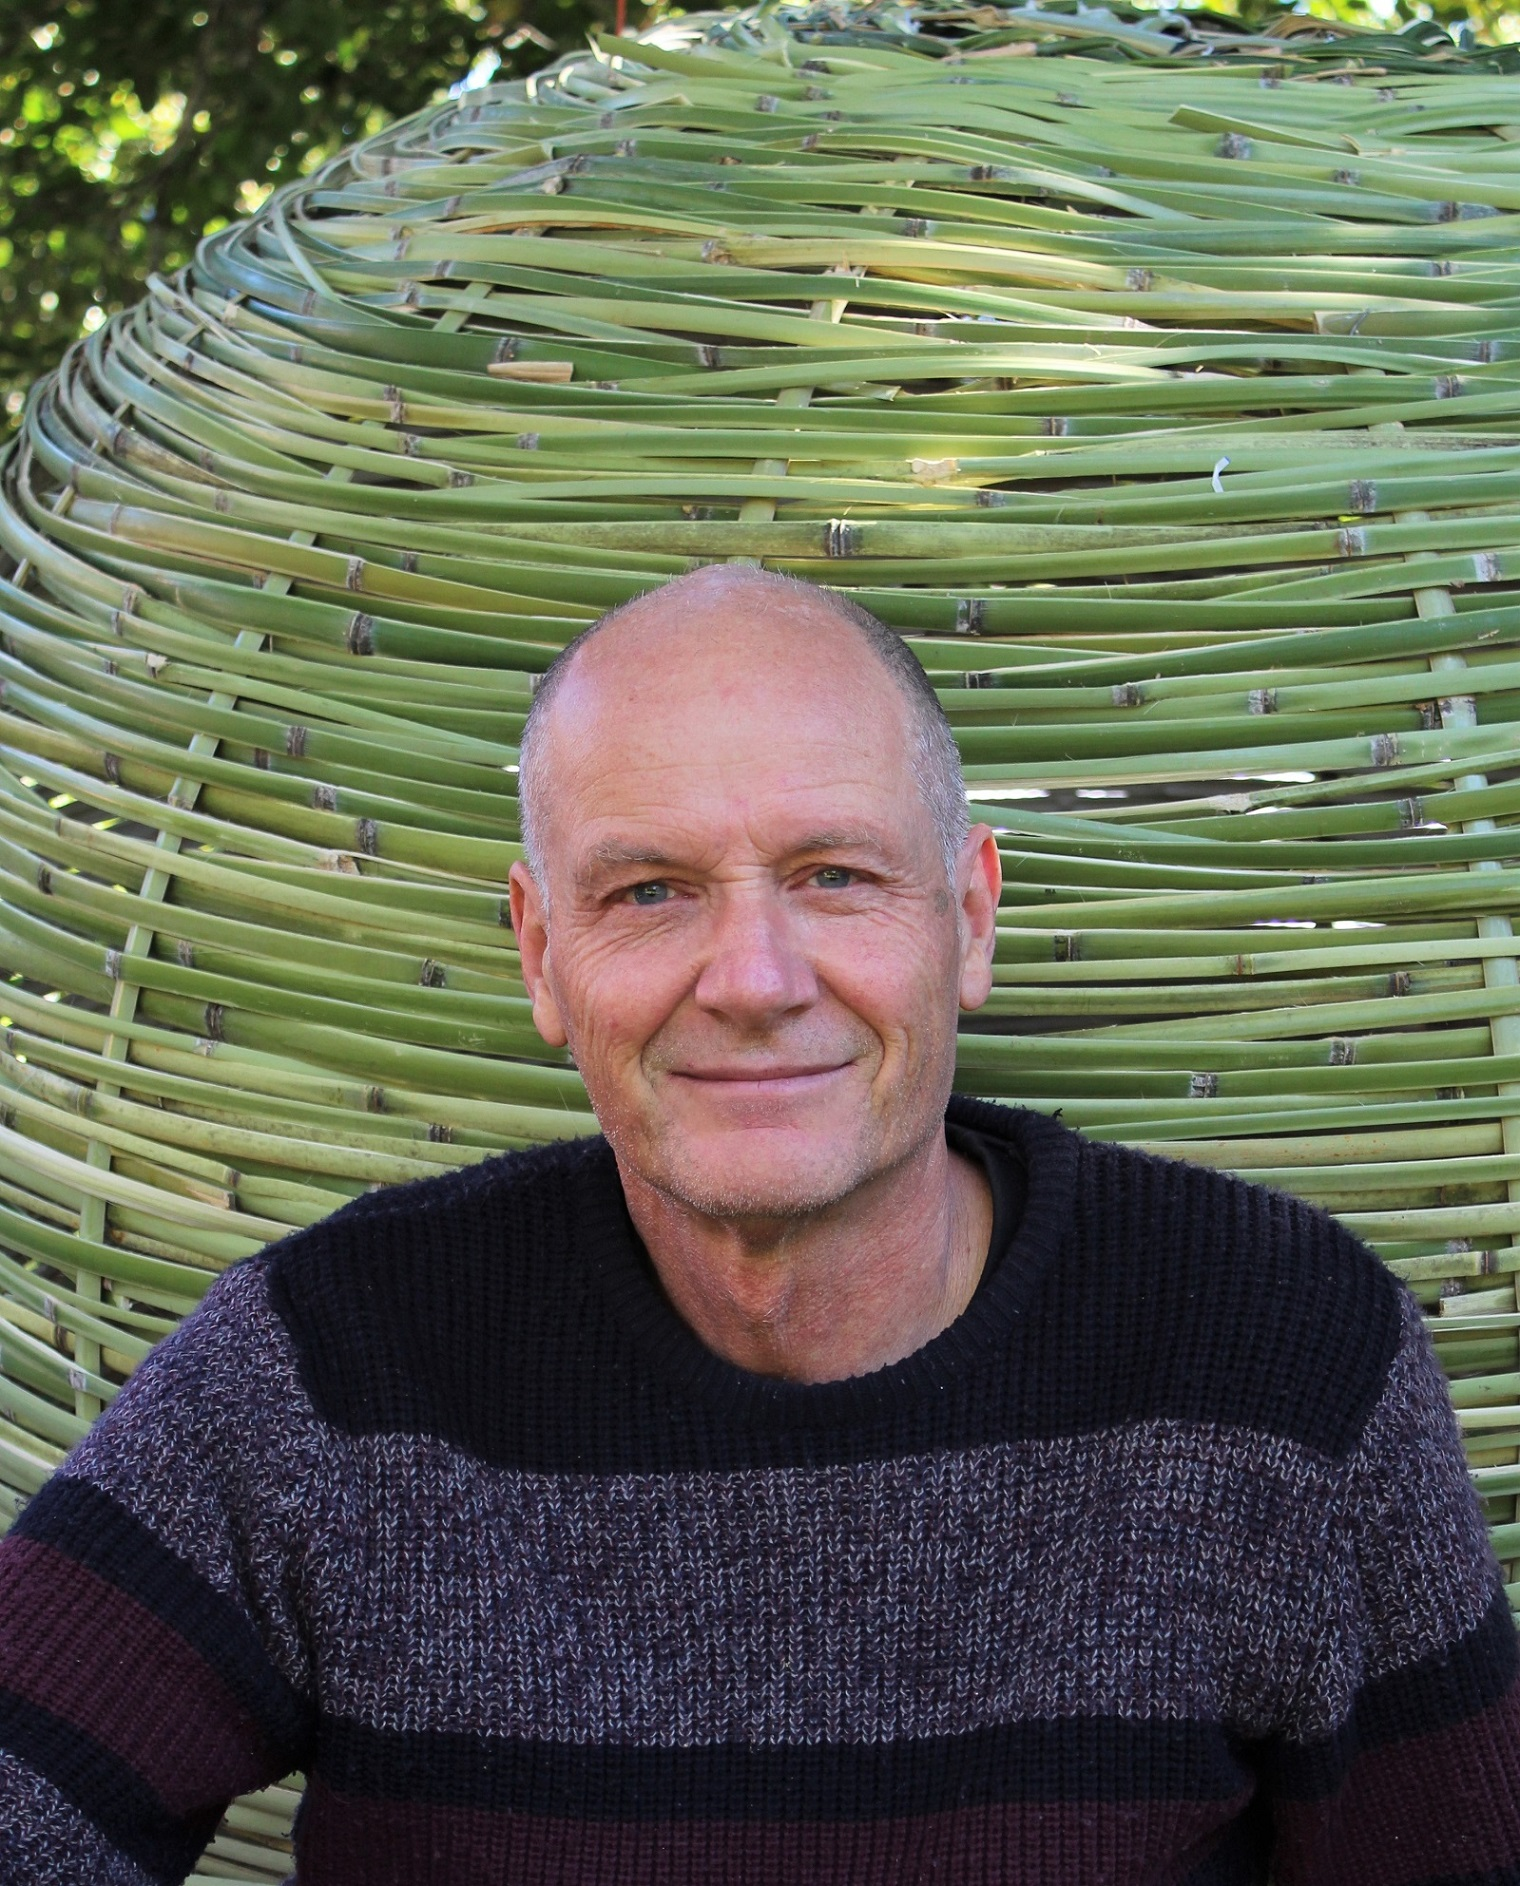 Miles Allen - Miles Allen is a Sunshine Coast Artist and a bit of a legend. He works with a range of media including painting, bamboo, found and discarded objects and more, to explore line, rhythm, memory, patina and the imprint of use upon materials.Miles is our first artist collaborator at projectfortawesome and we absolutely love working with him. We are currently developing a design prototype and strategy for a unique garden-based play-space with Miles thanks to a small grant from Sunshine Coast council.www.milesallen.com/about/